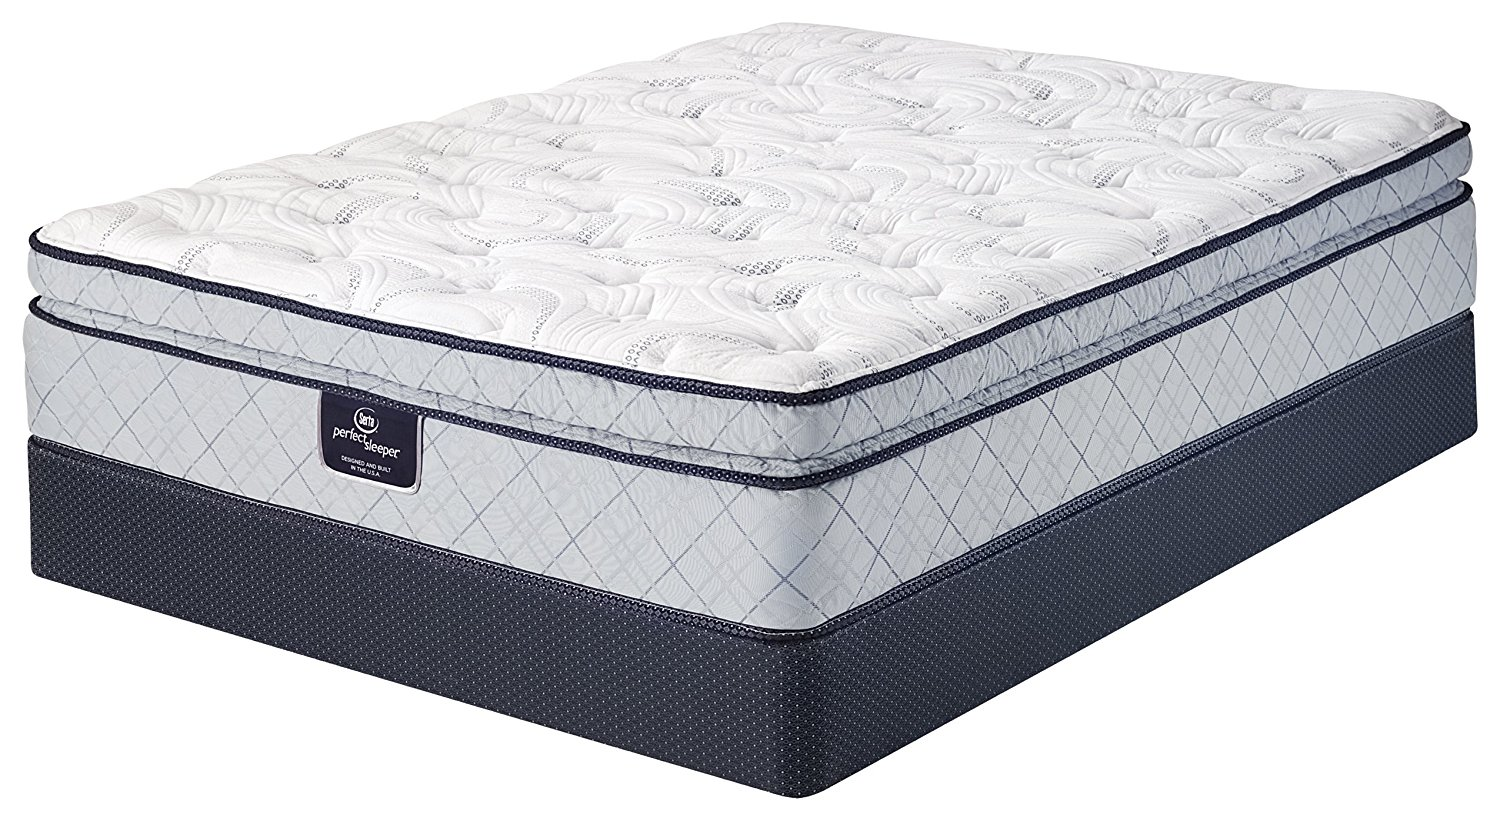 Serta Perfect Sleeper Lockland Pillowtop Mattress